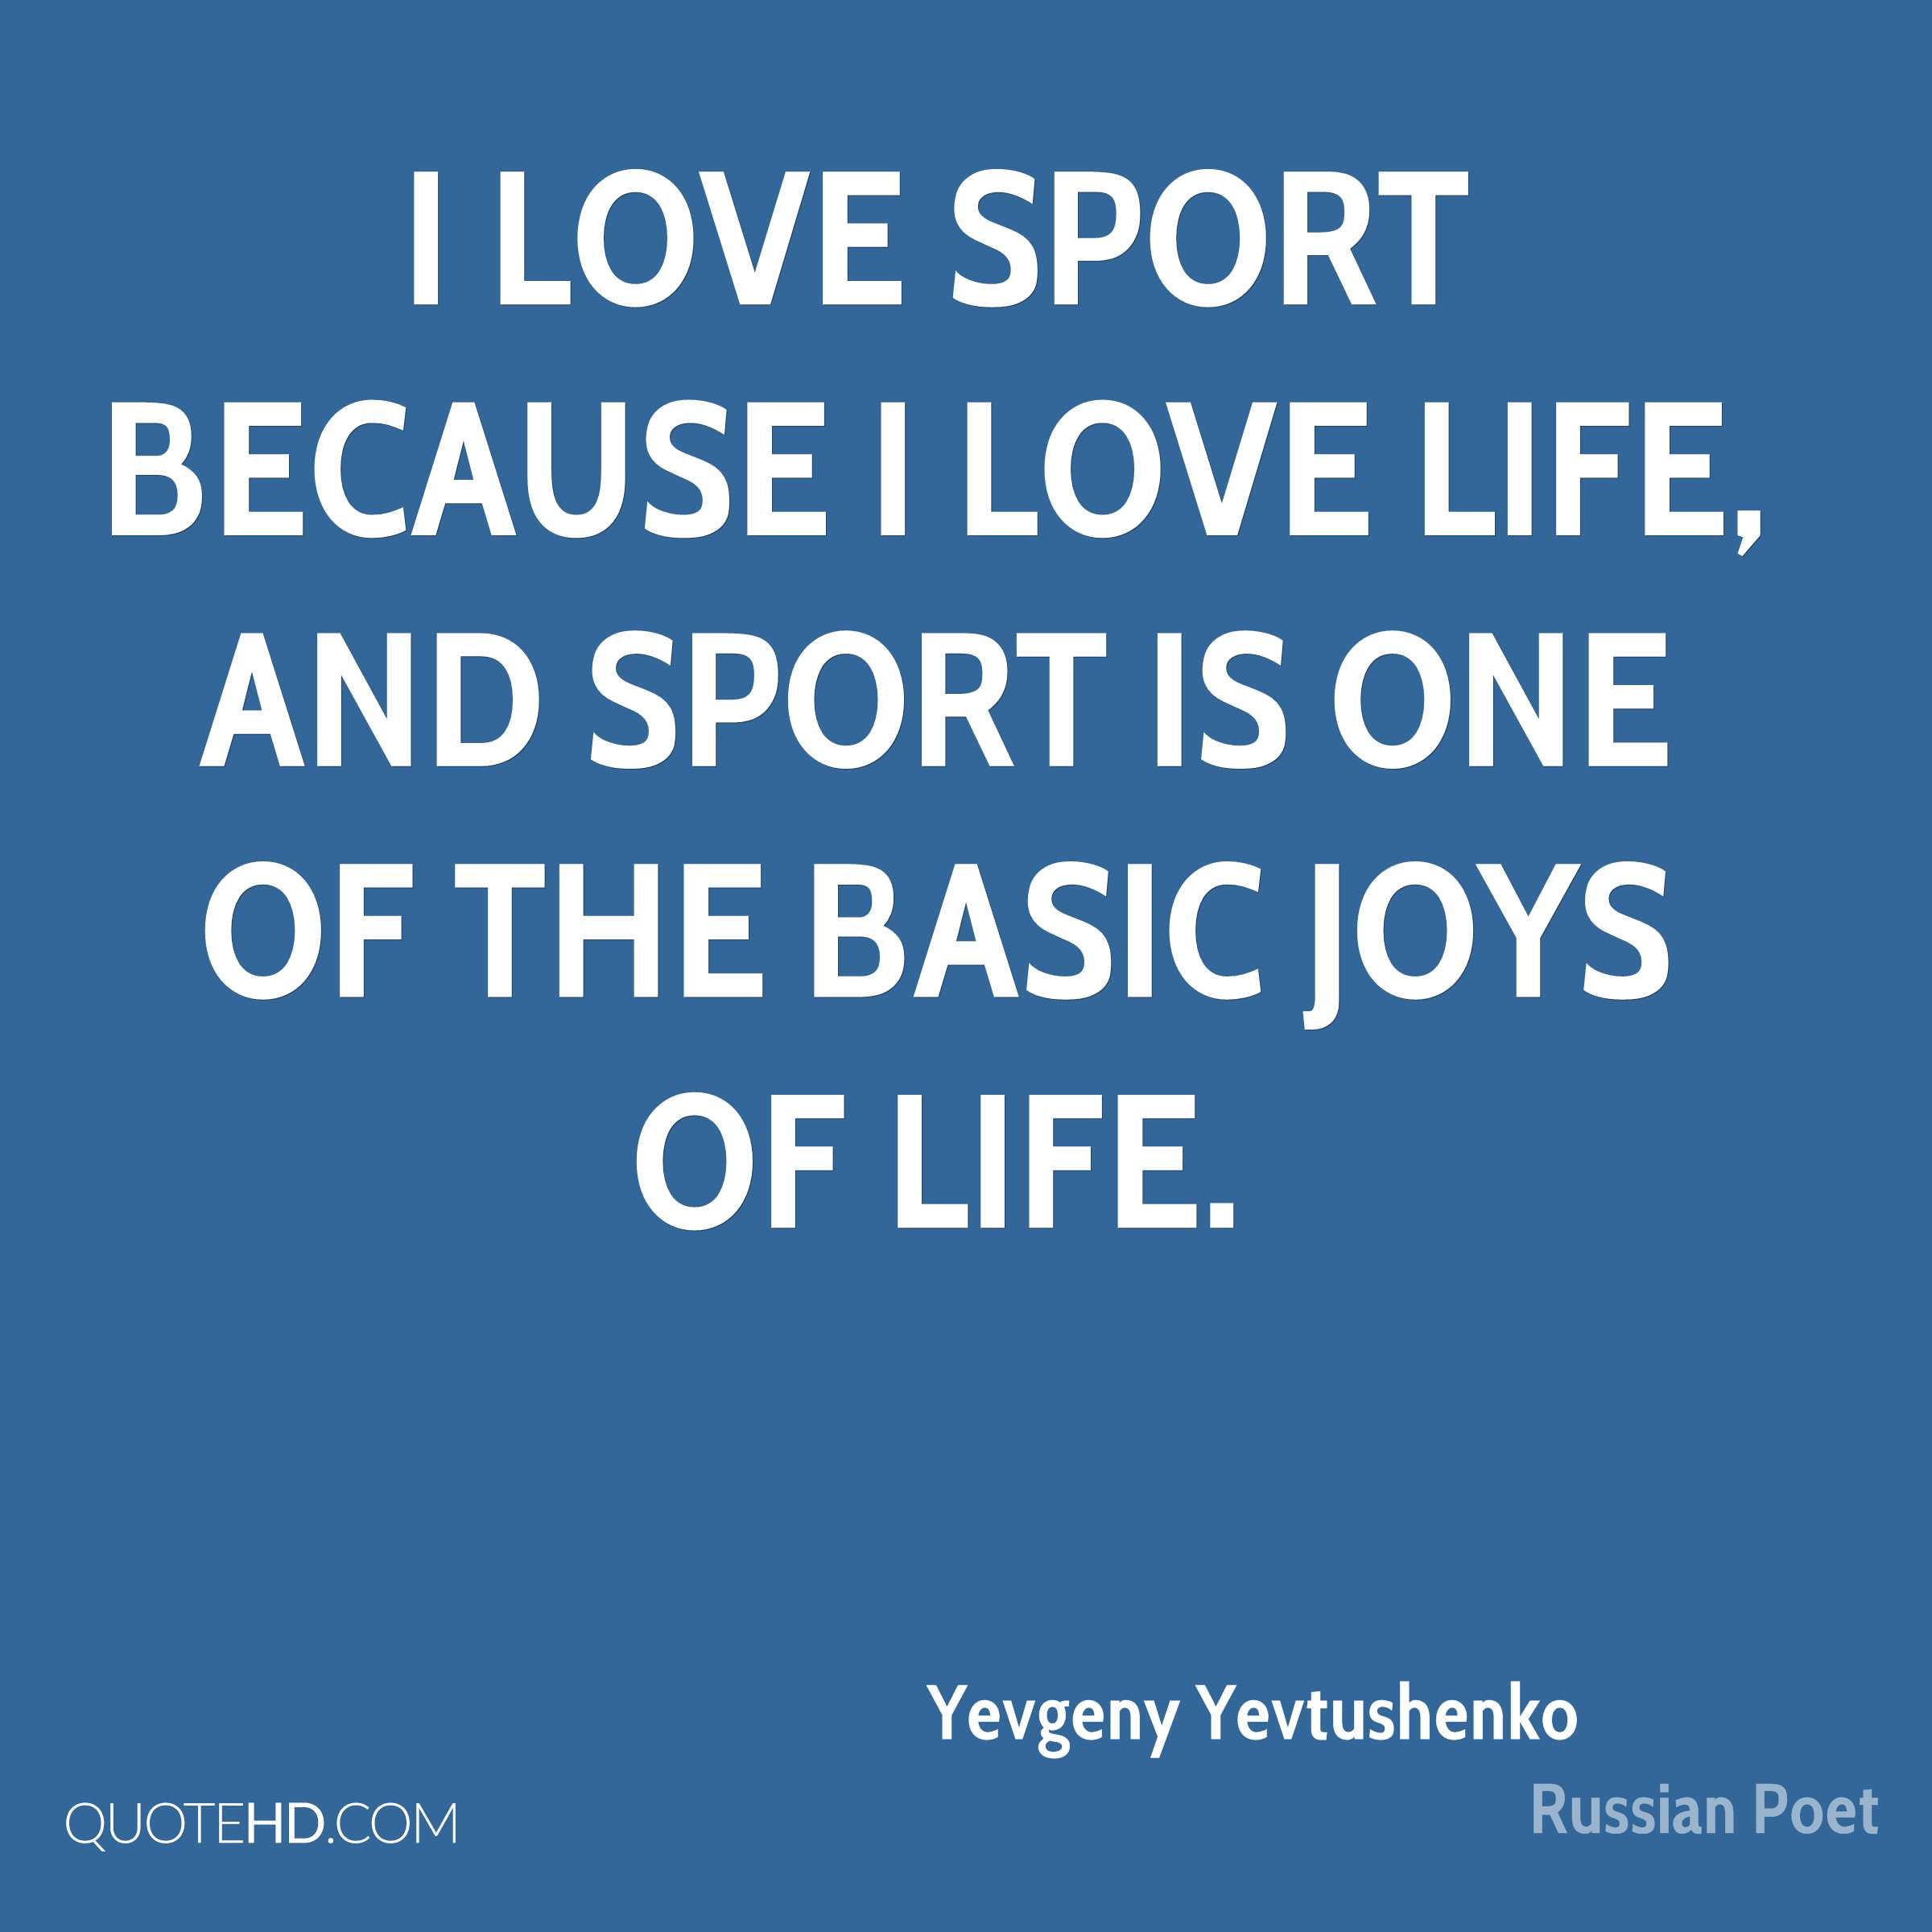 Sports Life Quotes Fascinating Yevgeny Yevtushenko Quotes  Quotehd